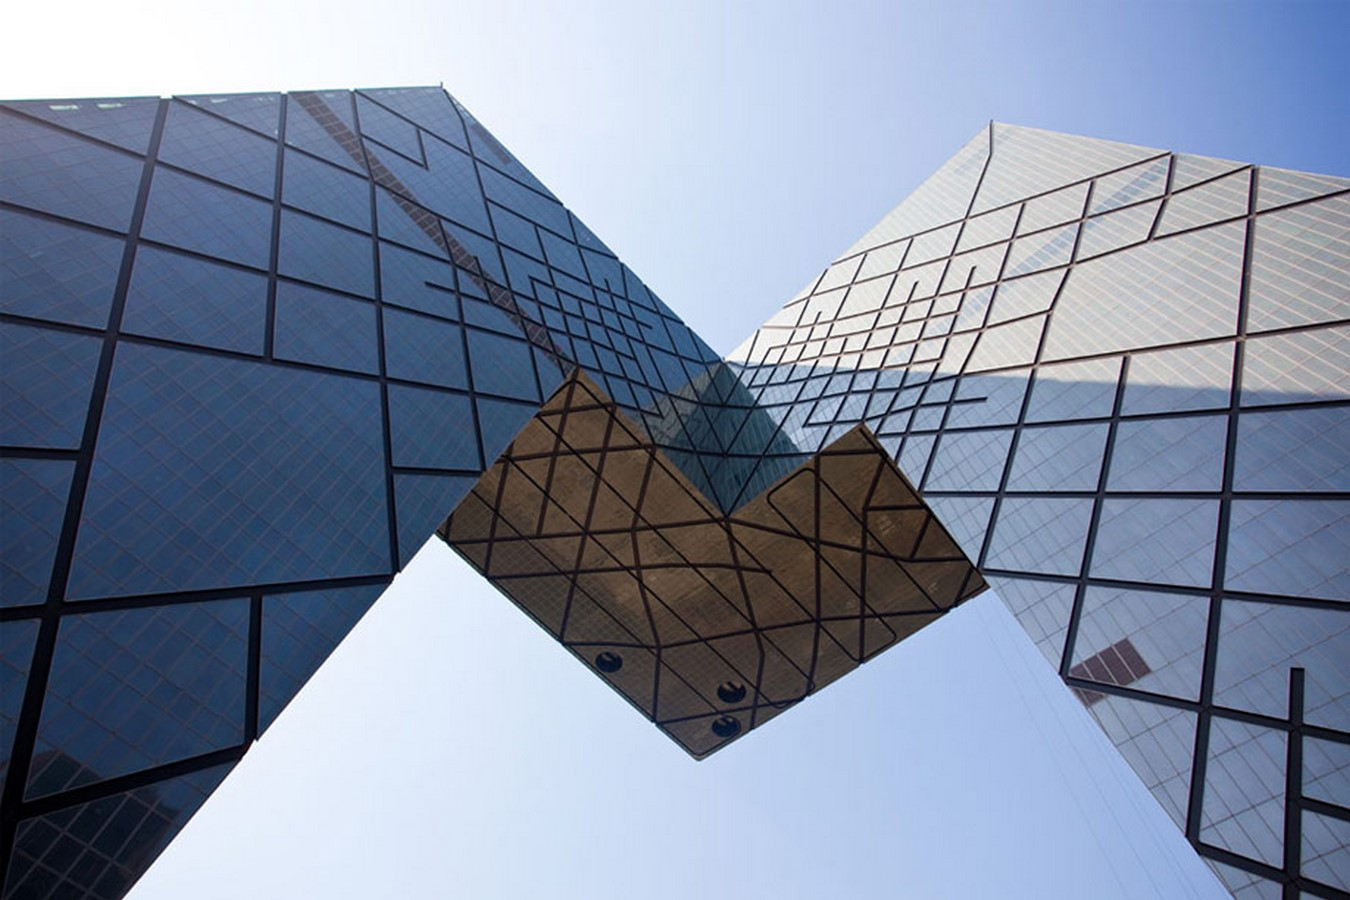 CCTV Tower by Rem Koolhaas- The world's most controversial building - Sheet1